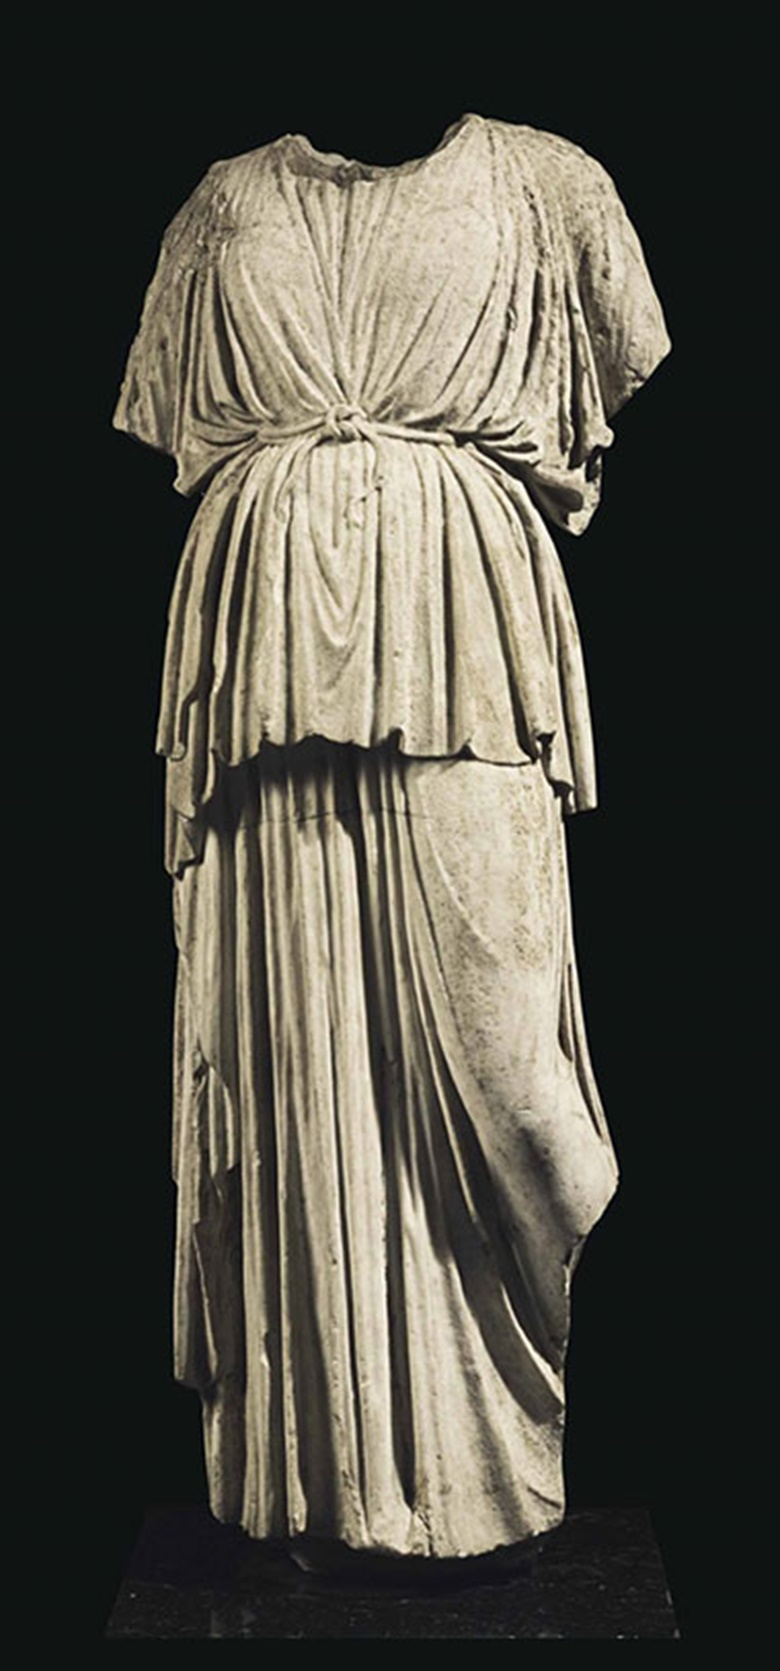 A Roman marble Athena. C. 1st century AD. 54 in (137 cm) high. This lot was offered inAntiquitieson 25 October 2016 at Christie's in New York